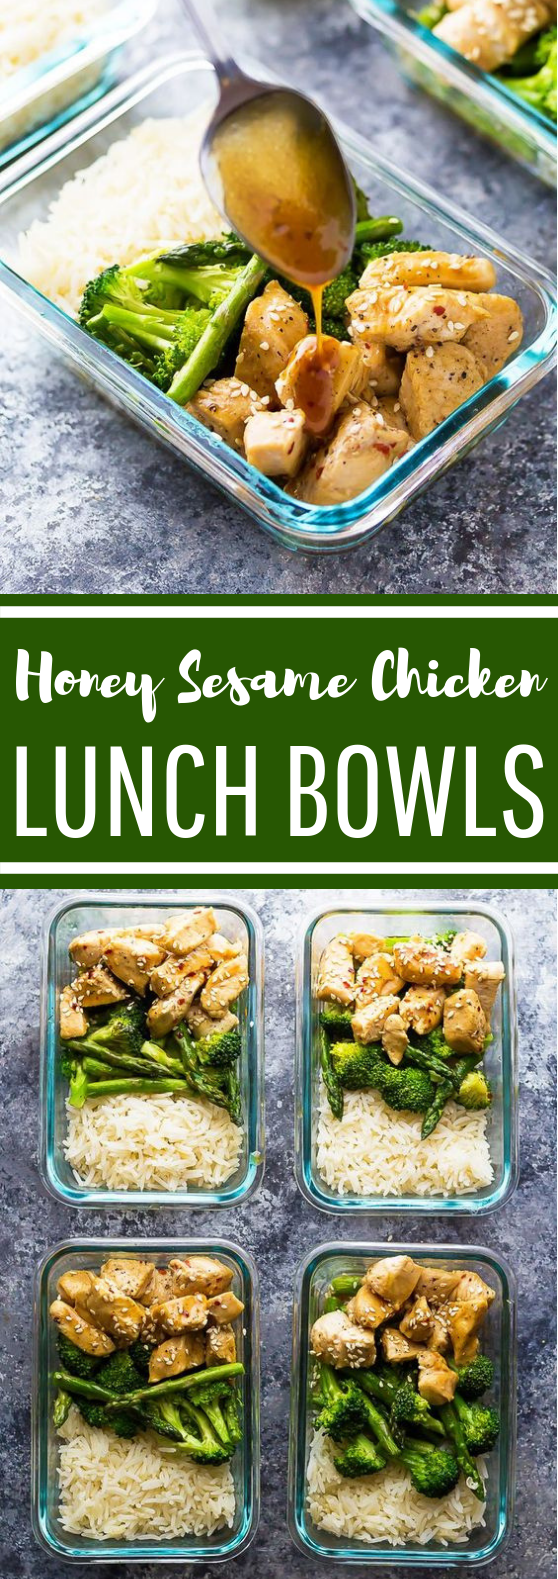 Honey Sesame Chicken Lunch Bowls #healthy #lunch